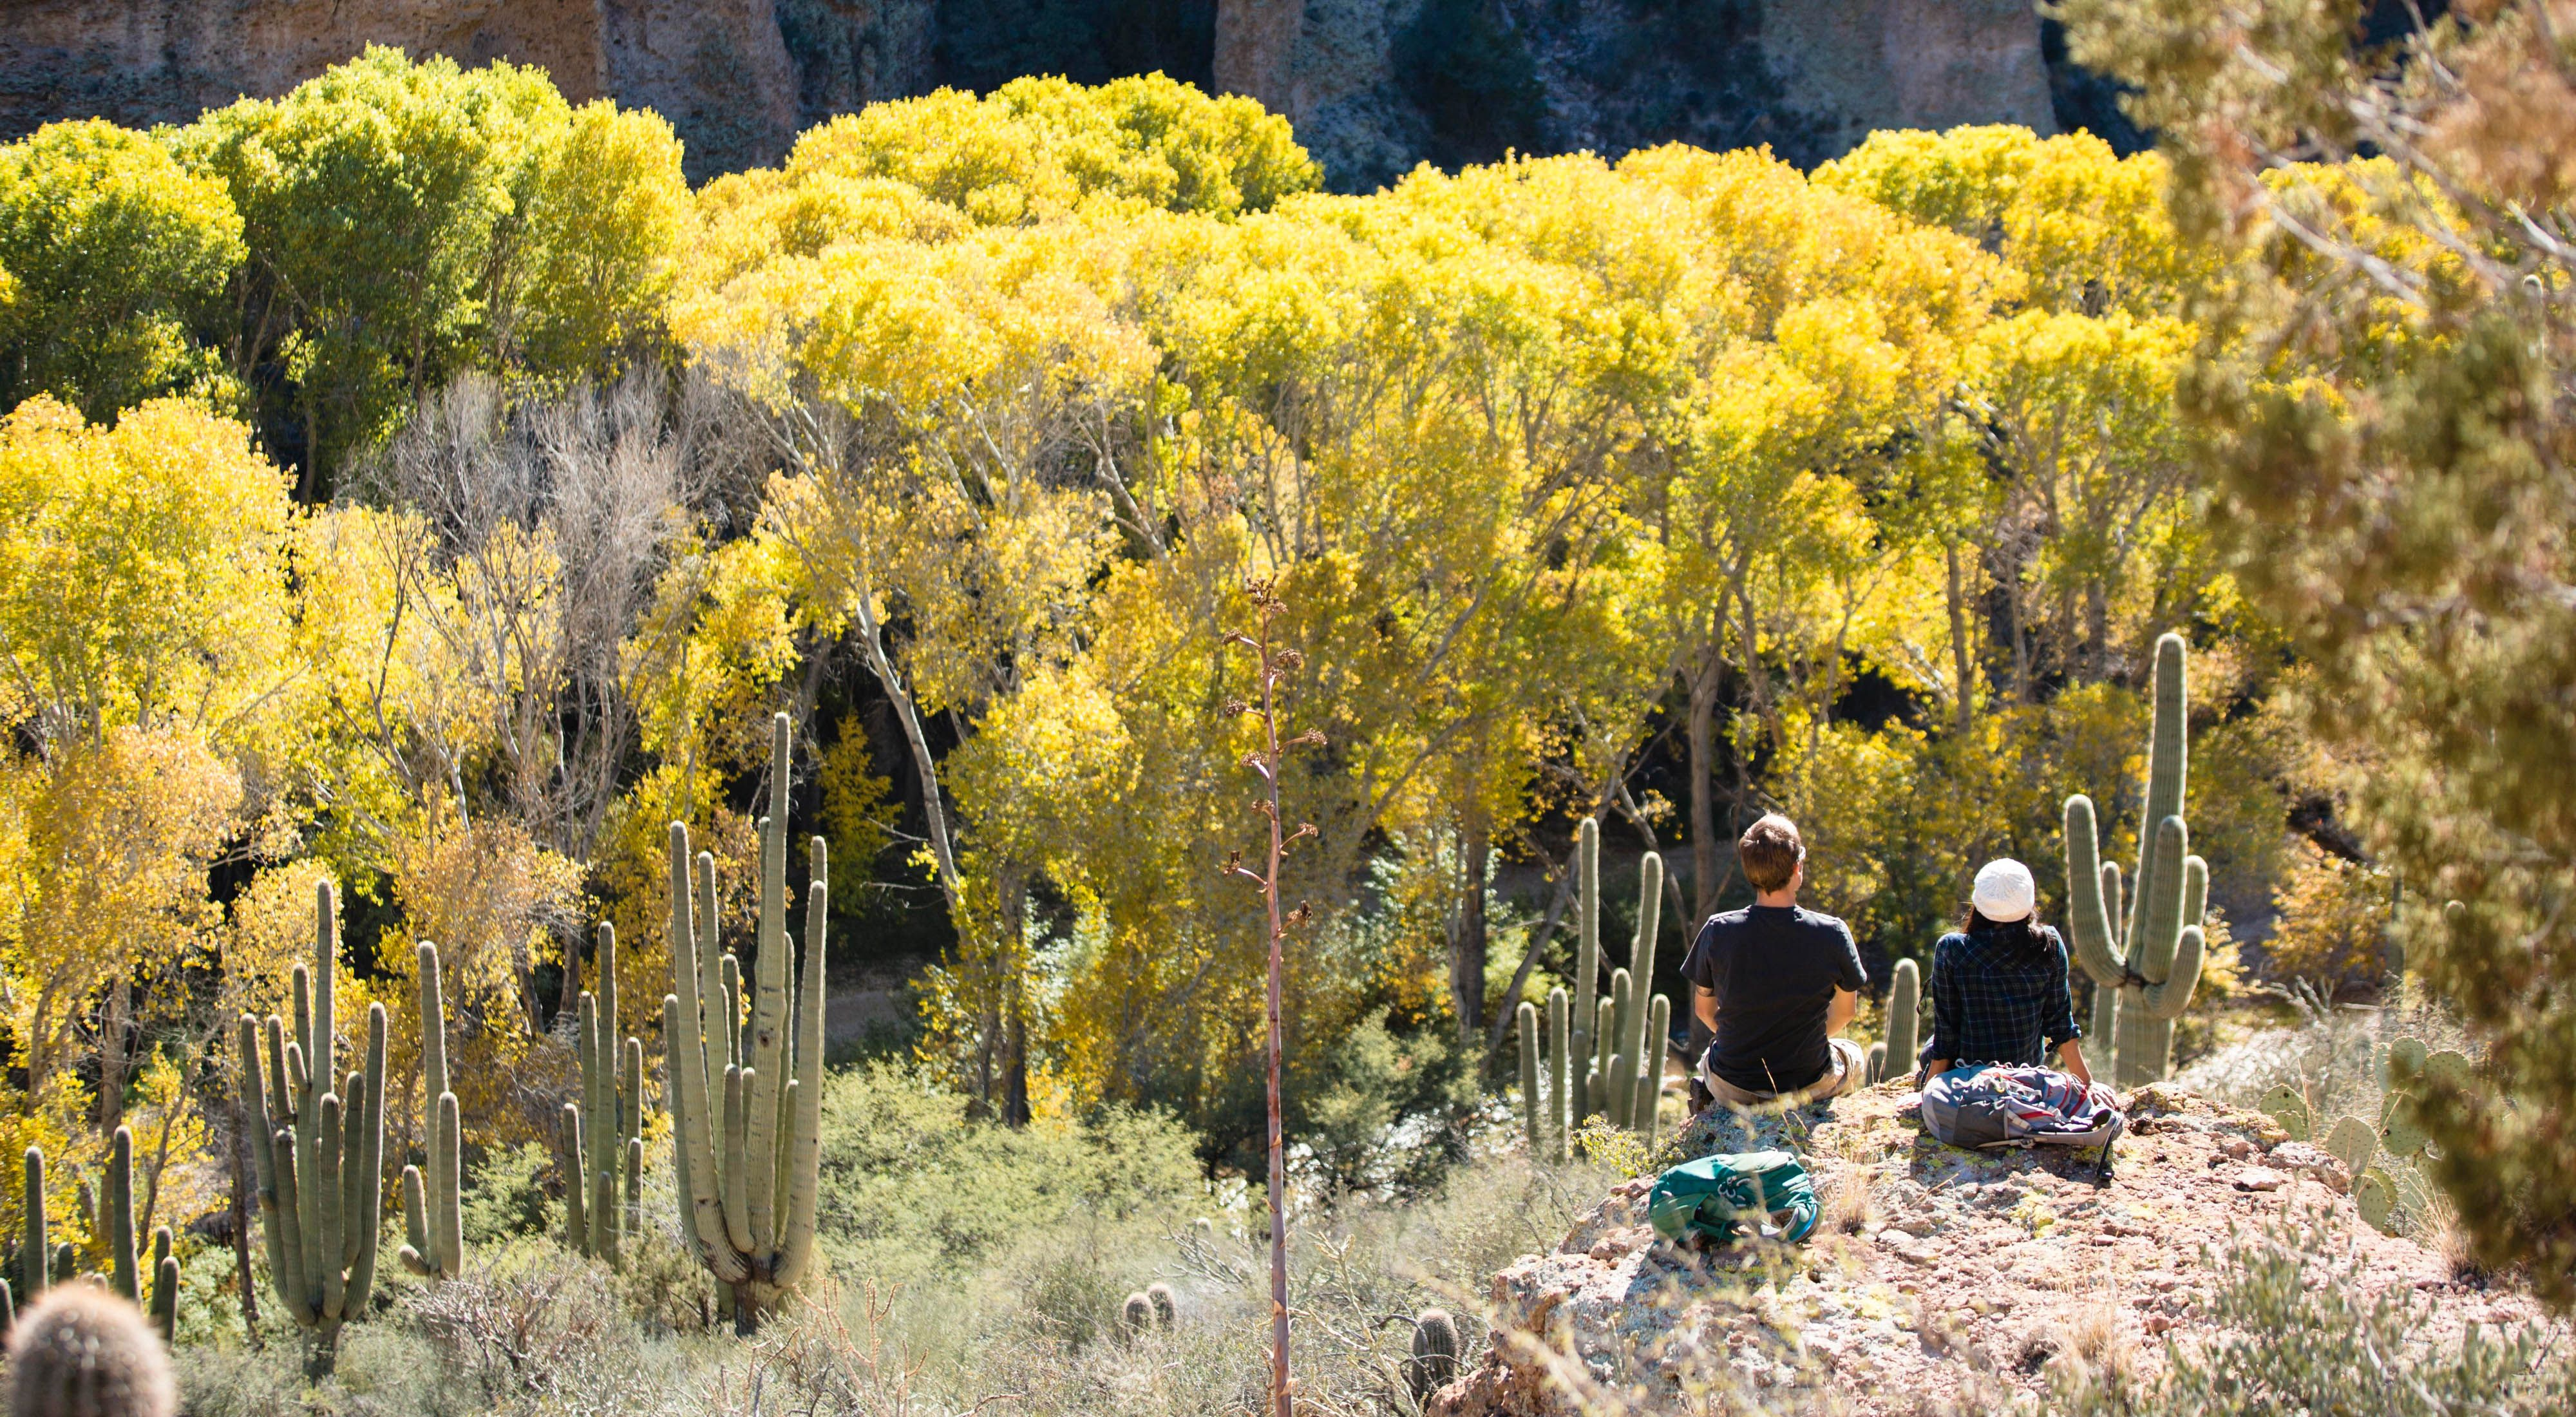 Hikers viewed from behind sitting on a slope surrounded by cactuses, trees and shrubs.